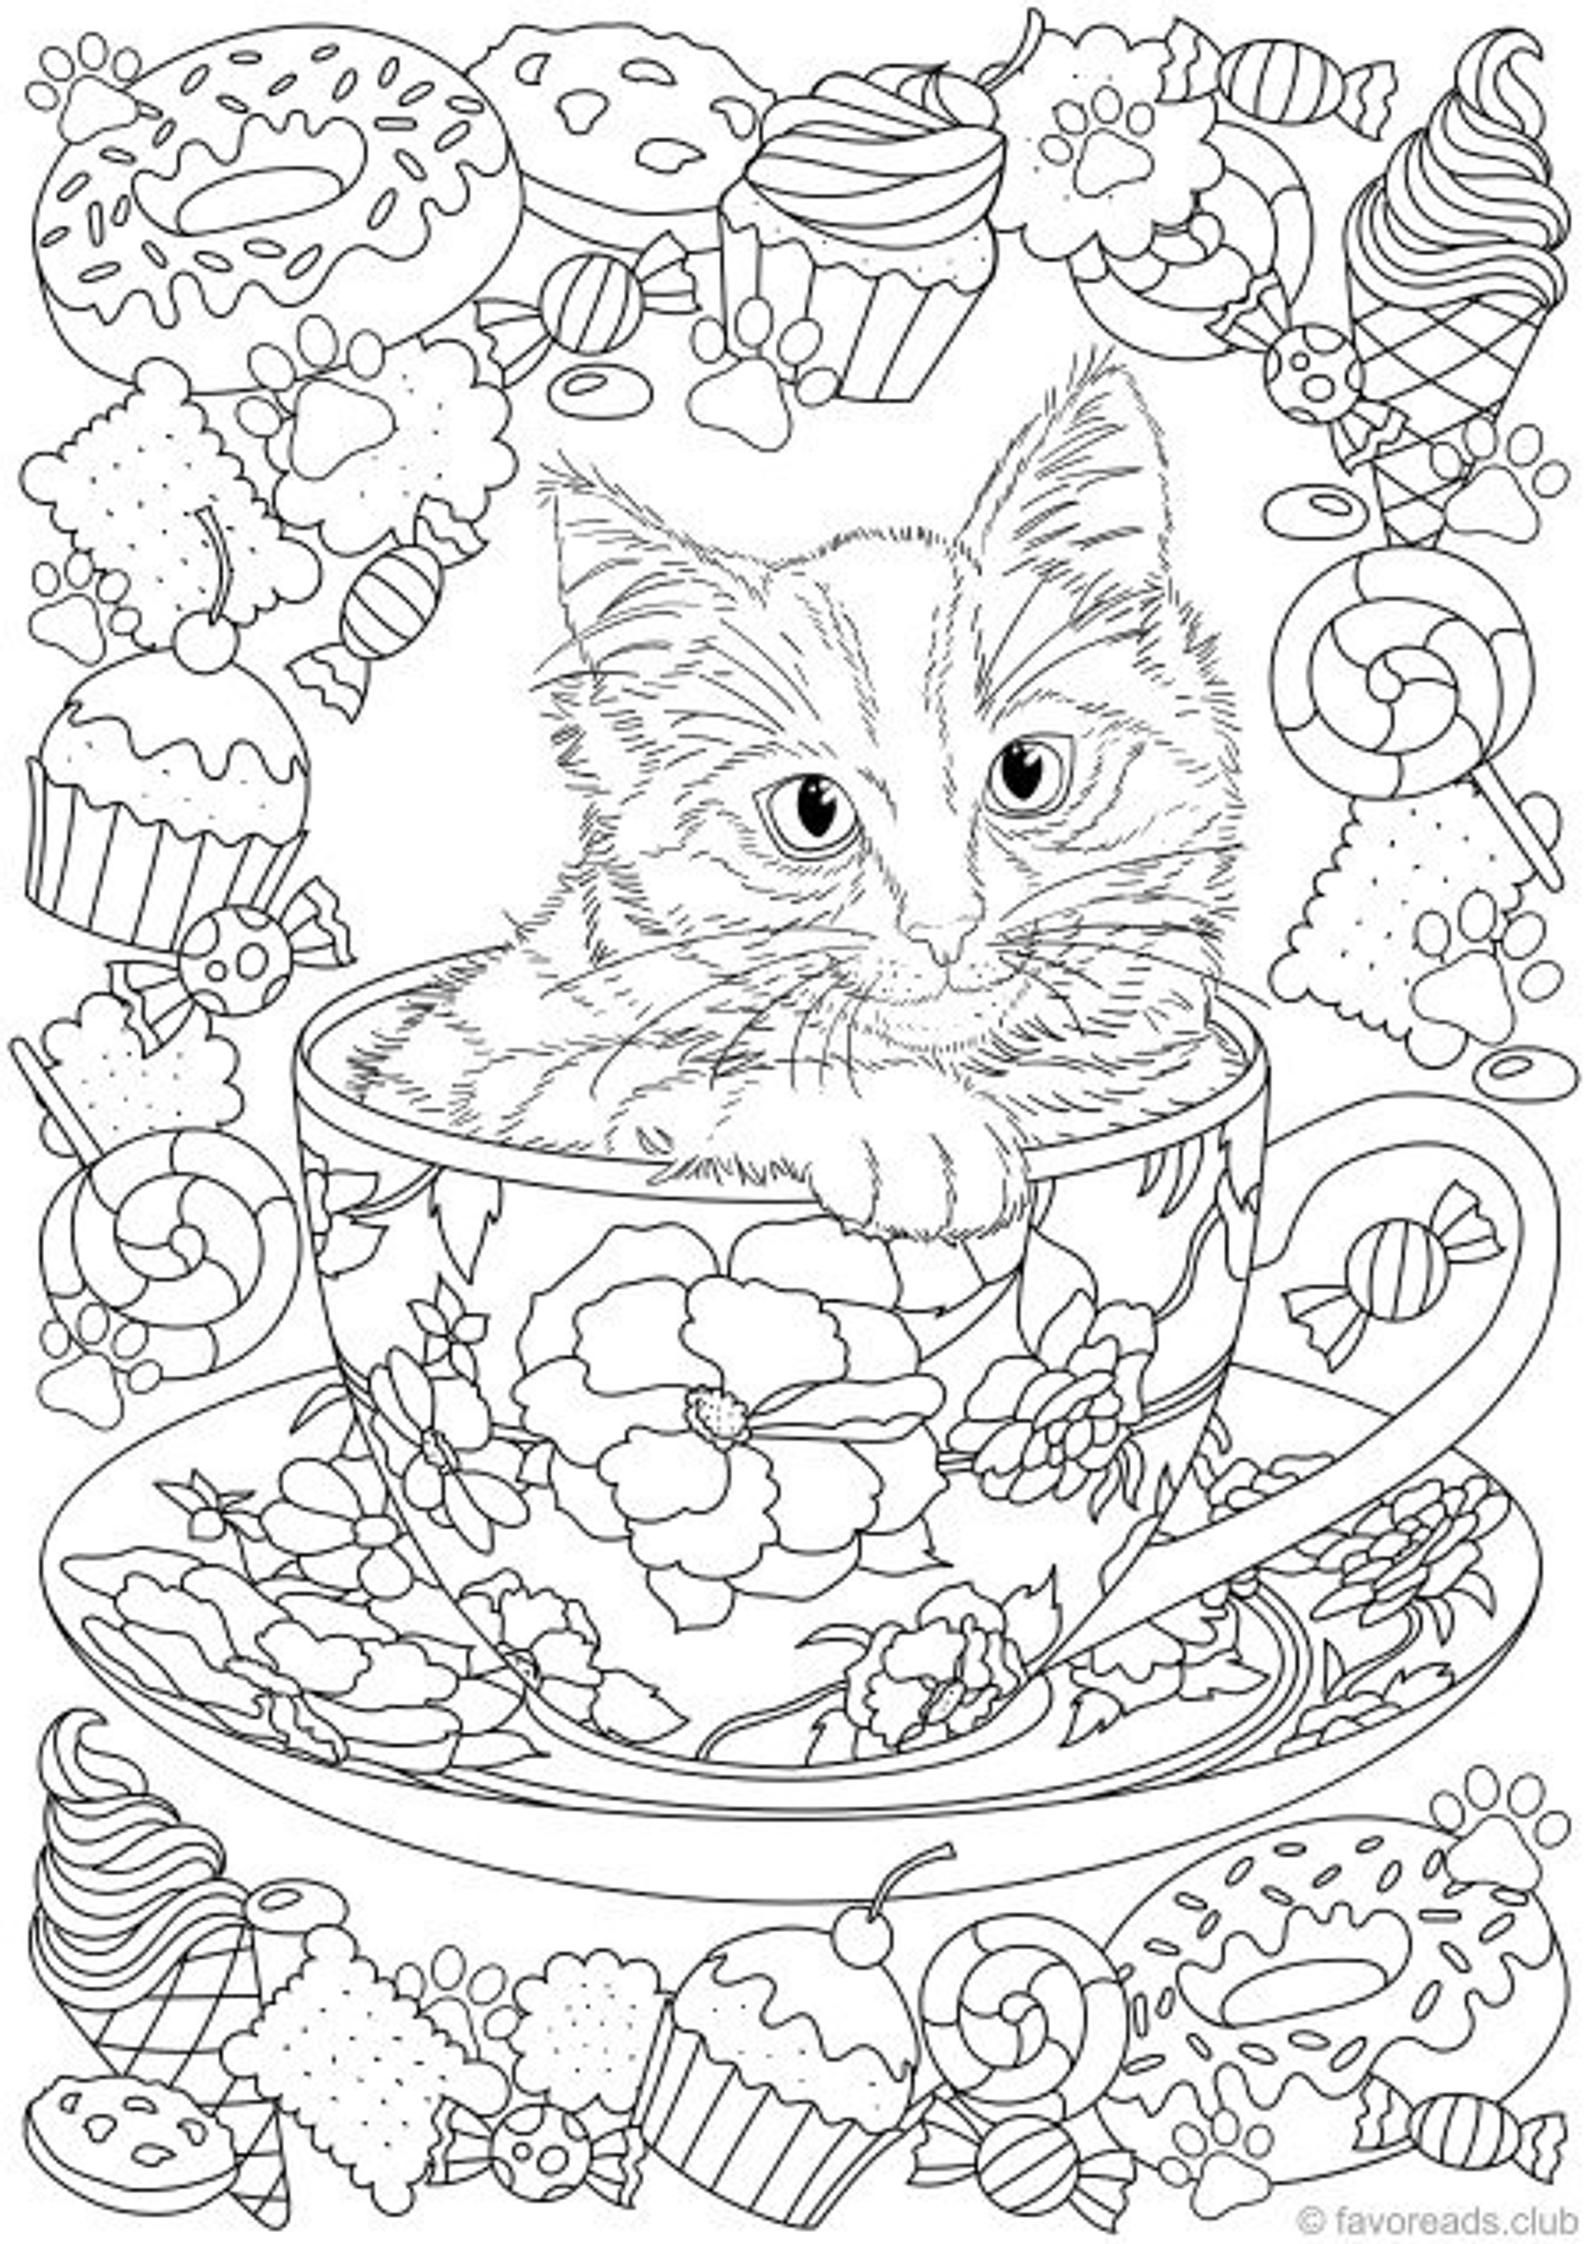 Cats and Dogs Bundle - 10 Printable Adult Coloring Pages ...